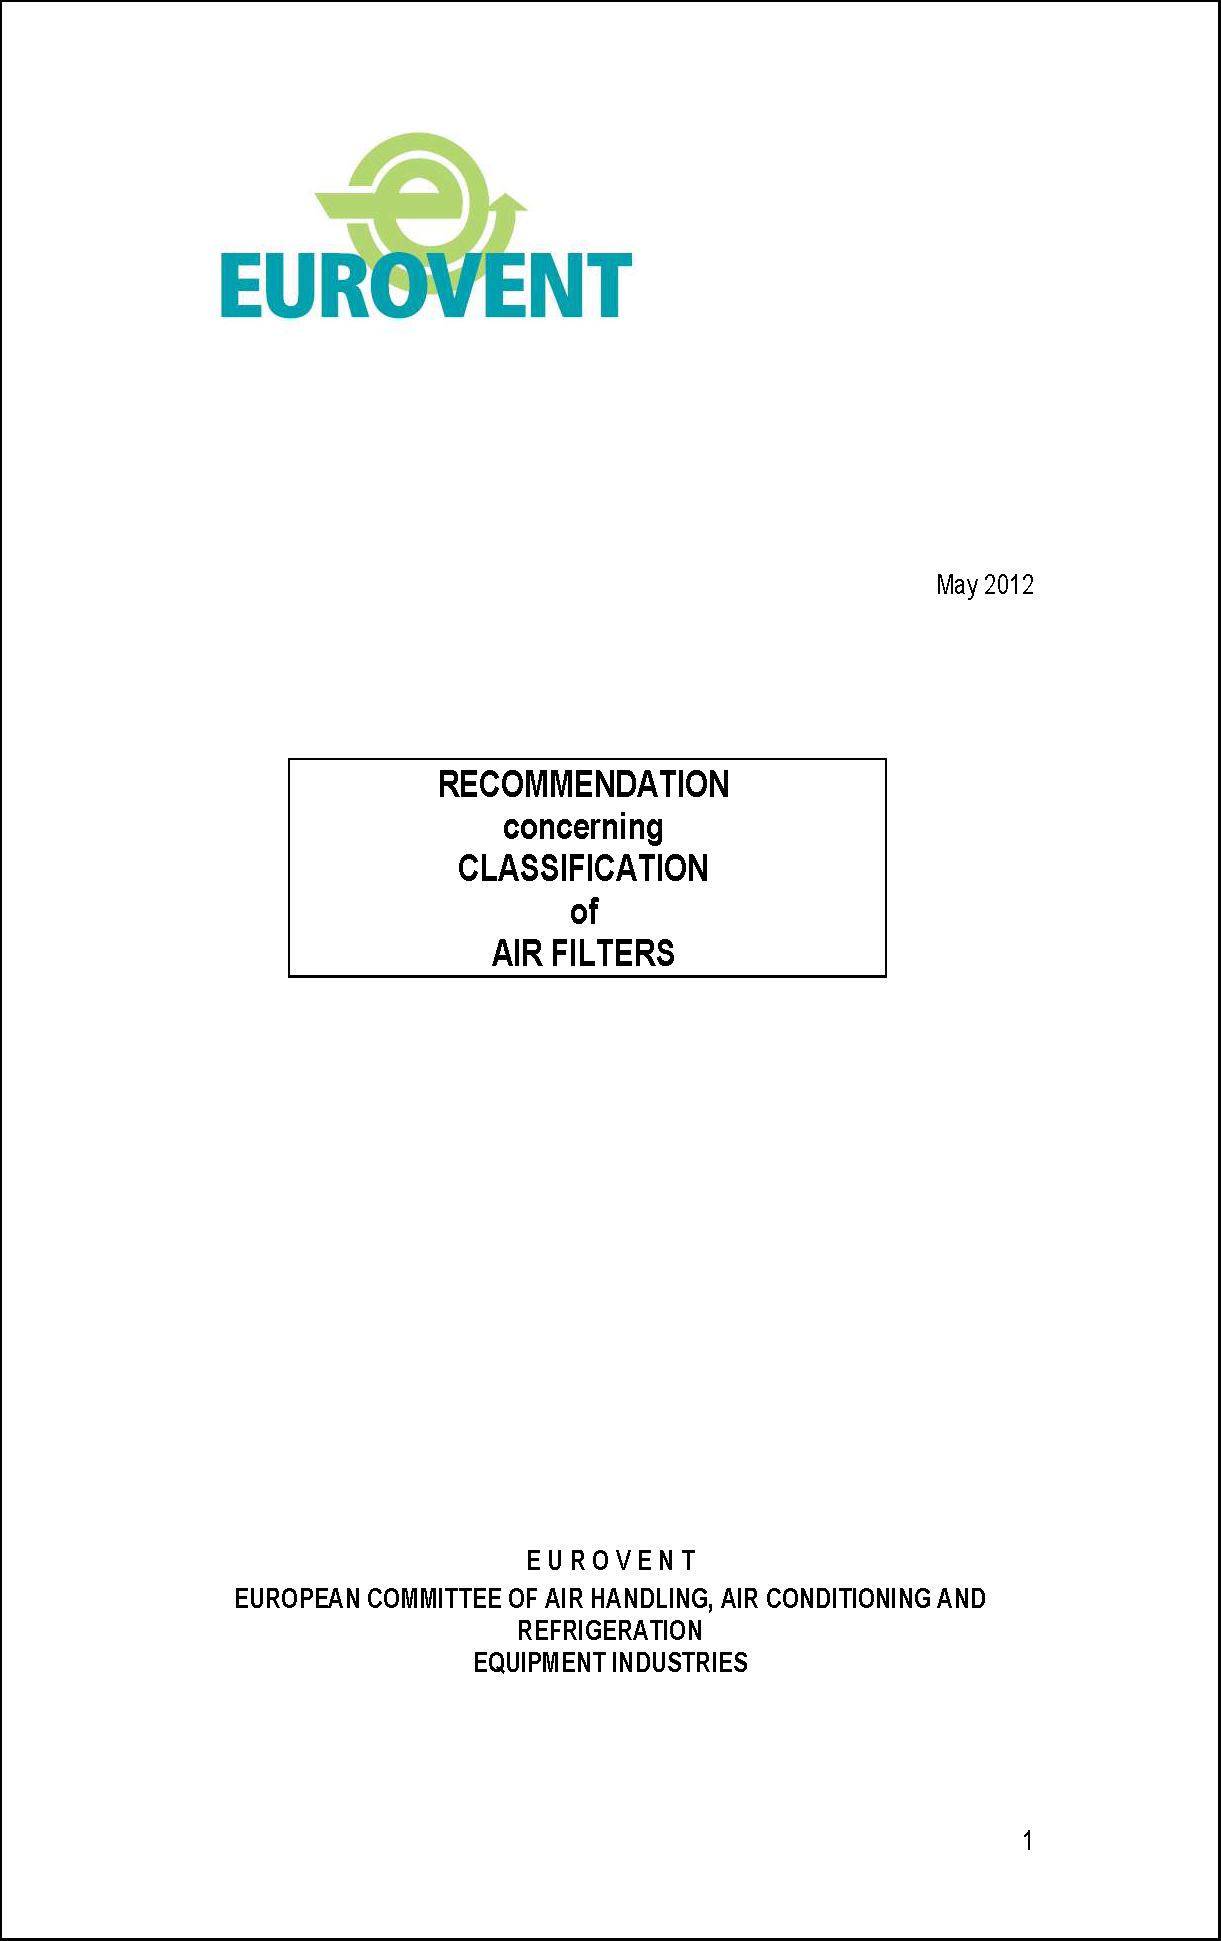 2012 - Recommendation concerning classification of air filters